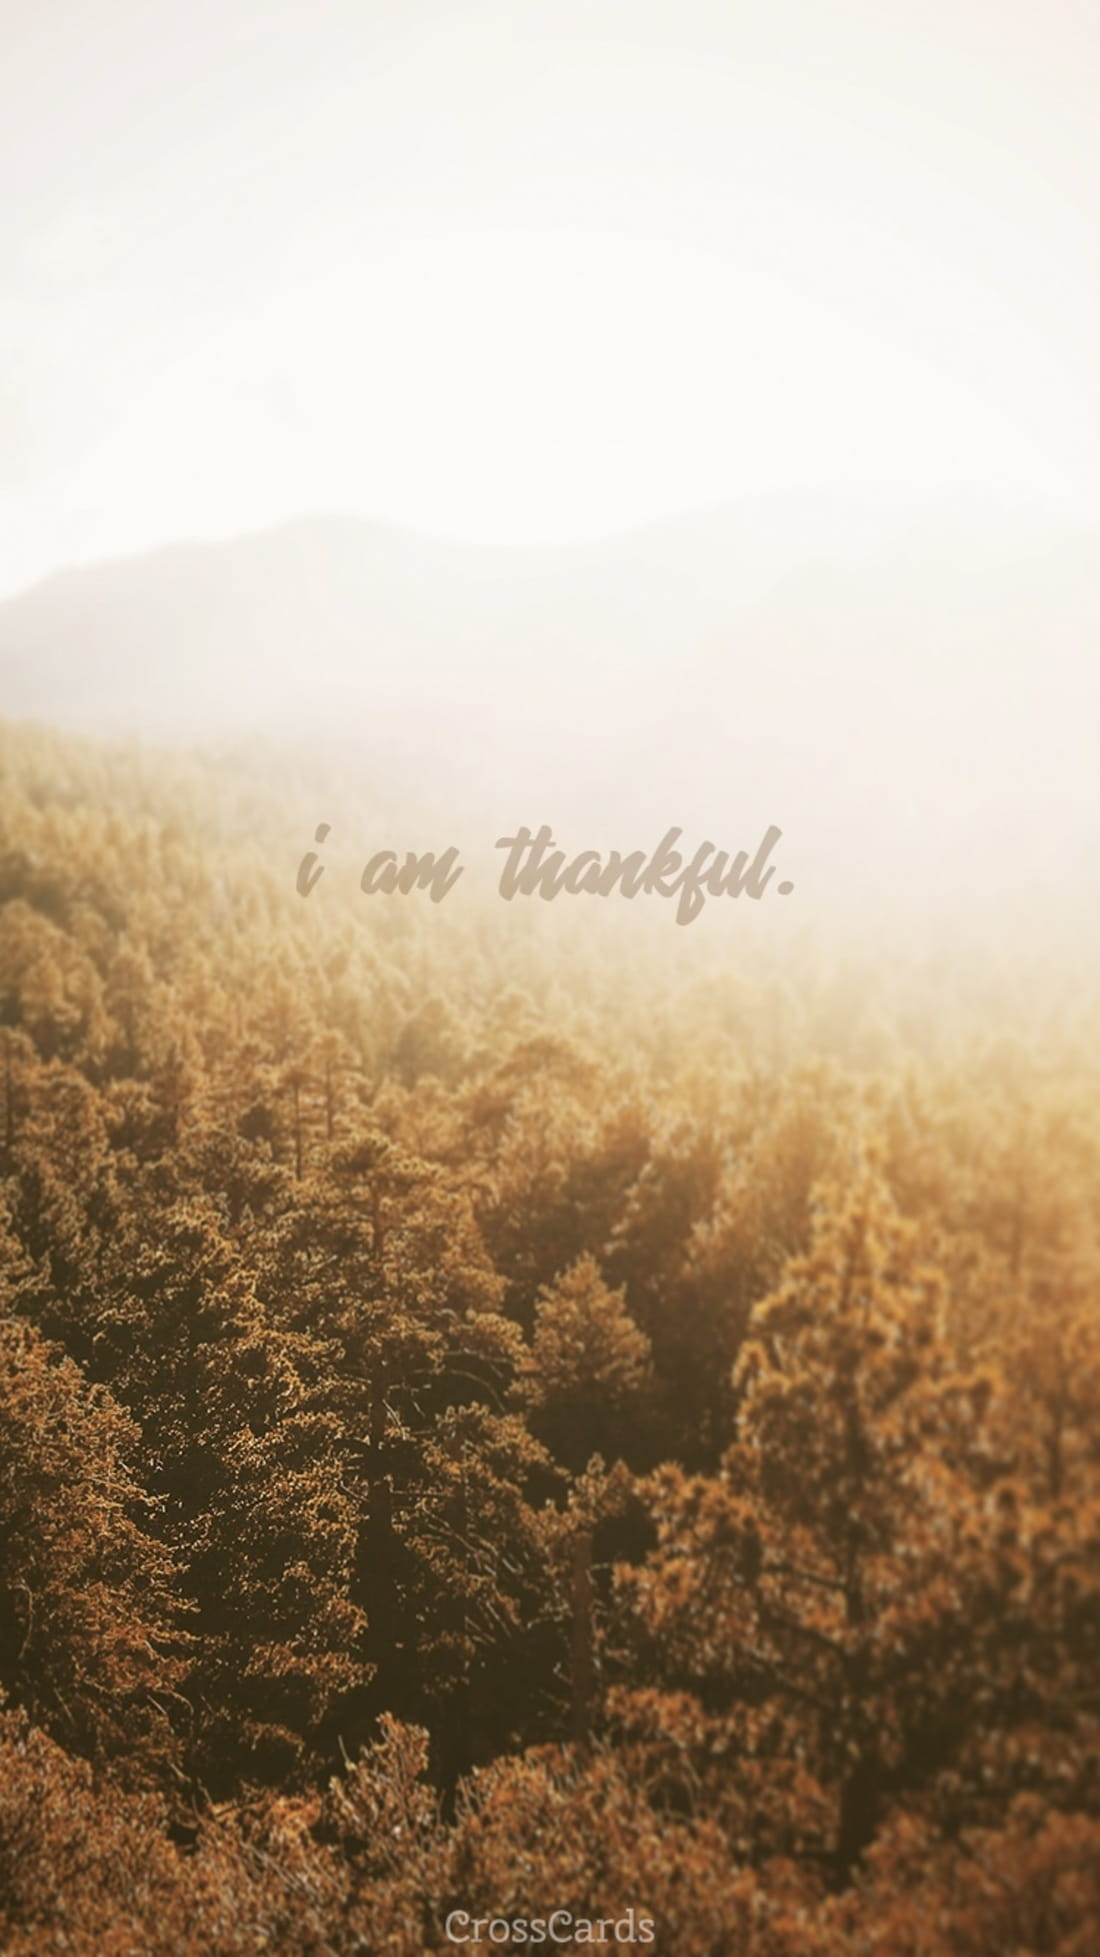 I Am Thankful mobile phone wallpaper